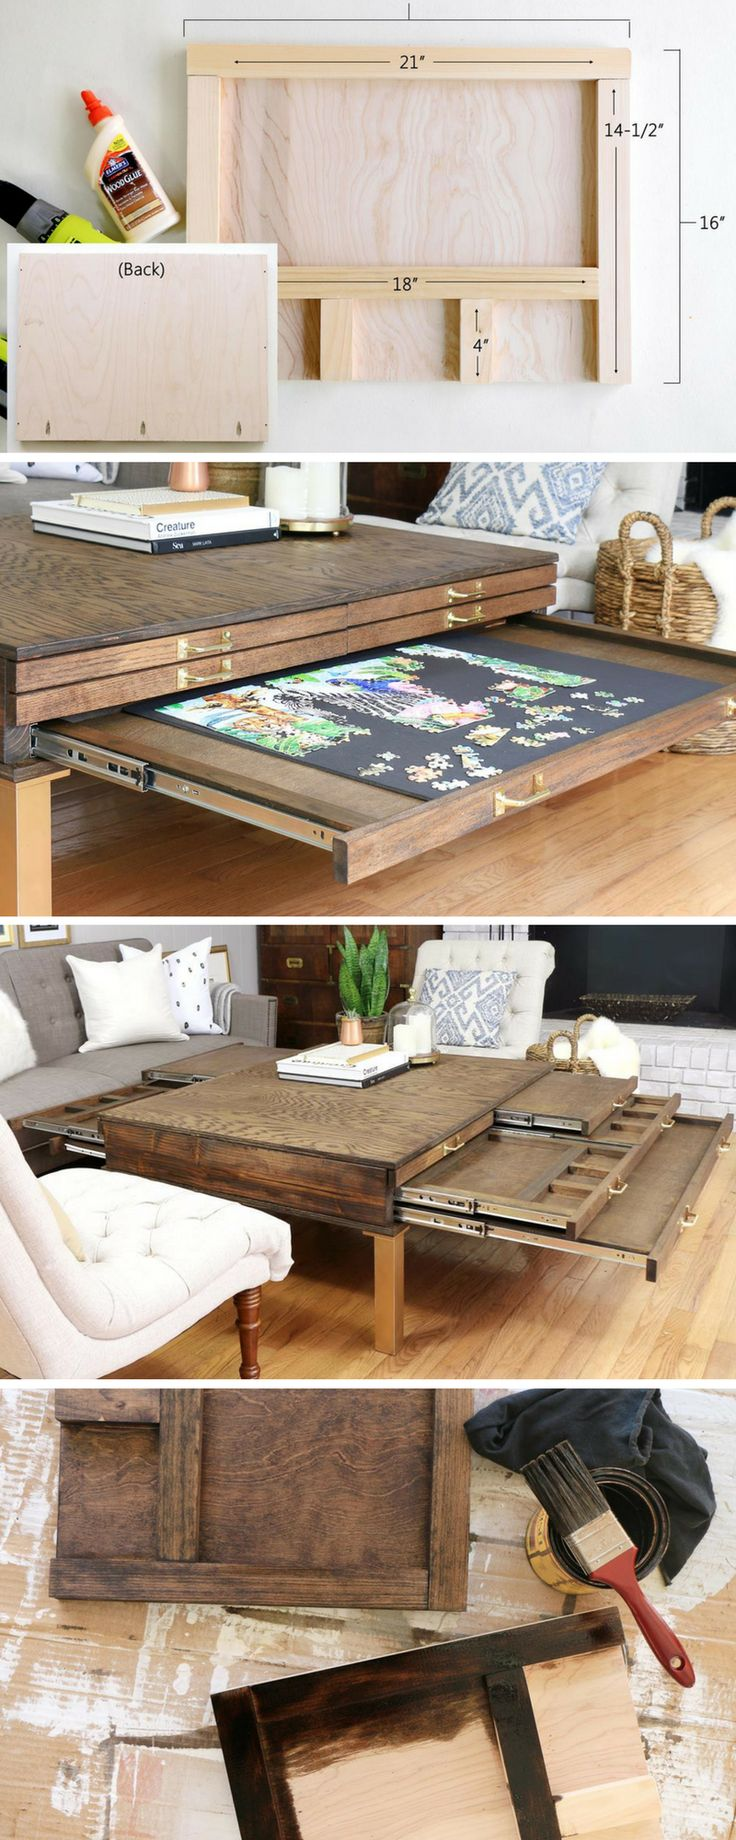 How To Build A Diy Coffee Table With Pullouts For Board Games Free Project Plan